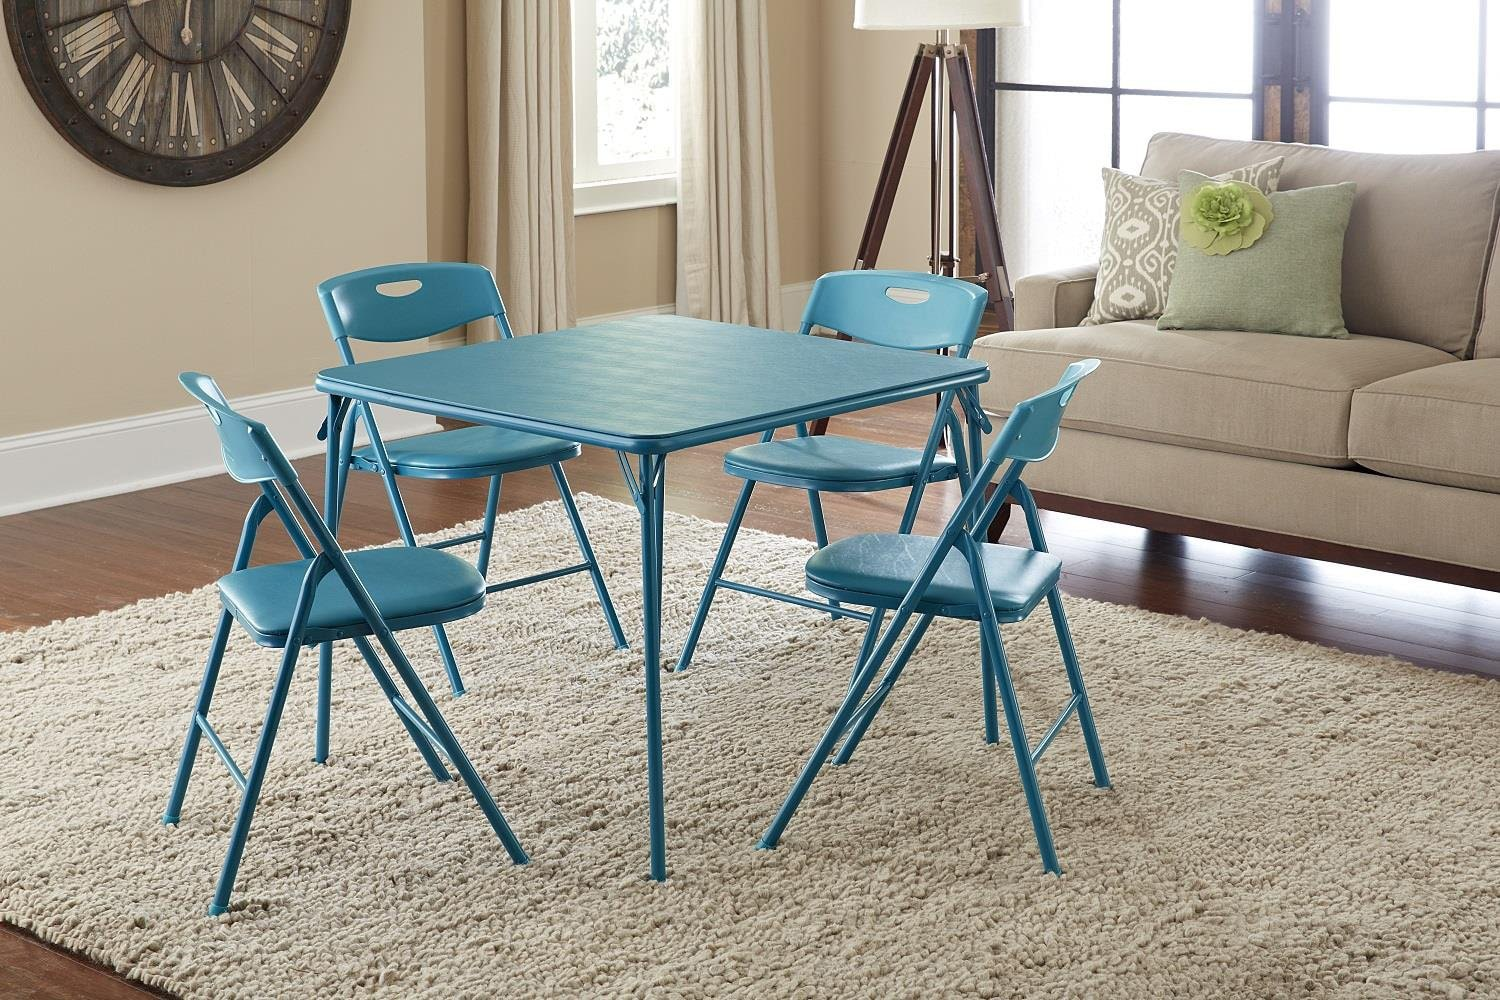 Top 10 Best Folding Table and Chair Sets in 2020 Reviews ...